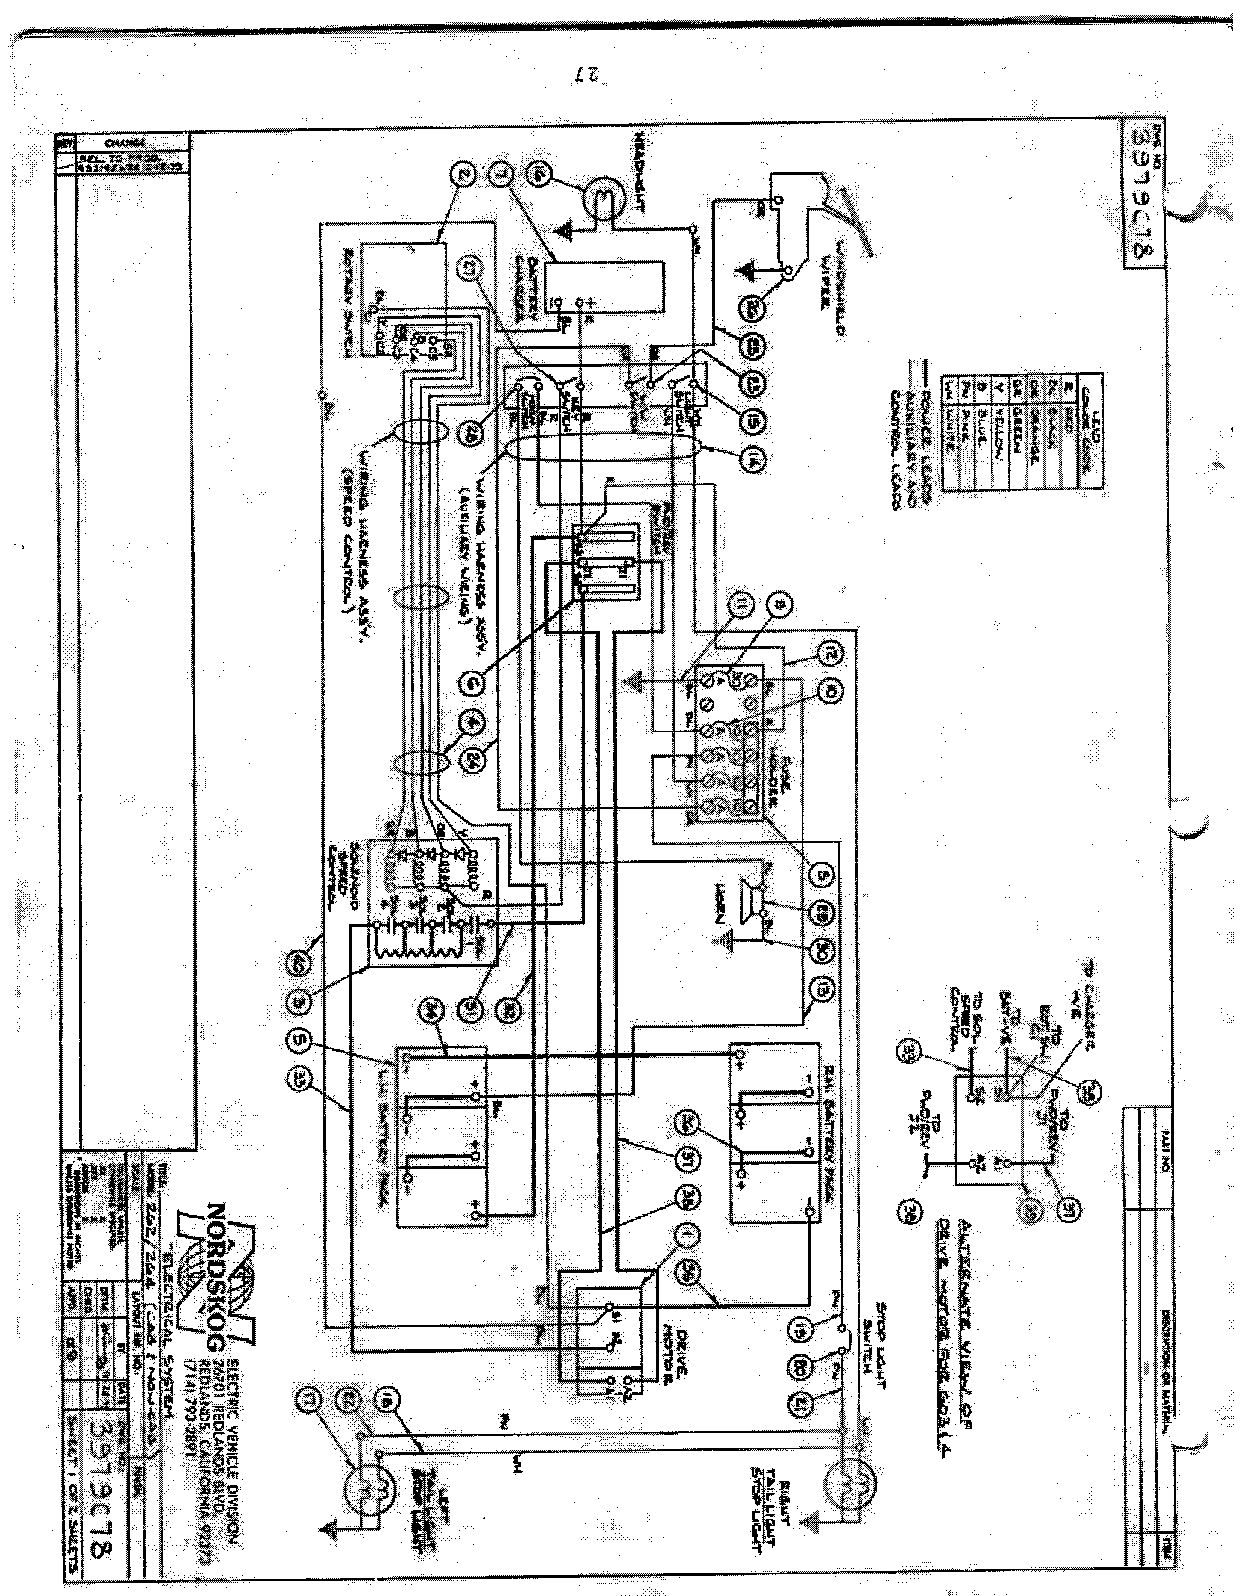 99 ezgo gas wiring diagram ha 5069  volt club car battery diagram free download wiring  ha 5069  volt club car battery diagram